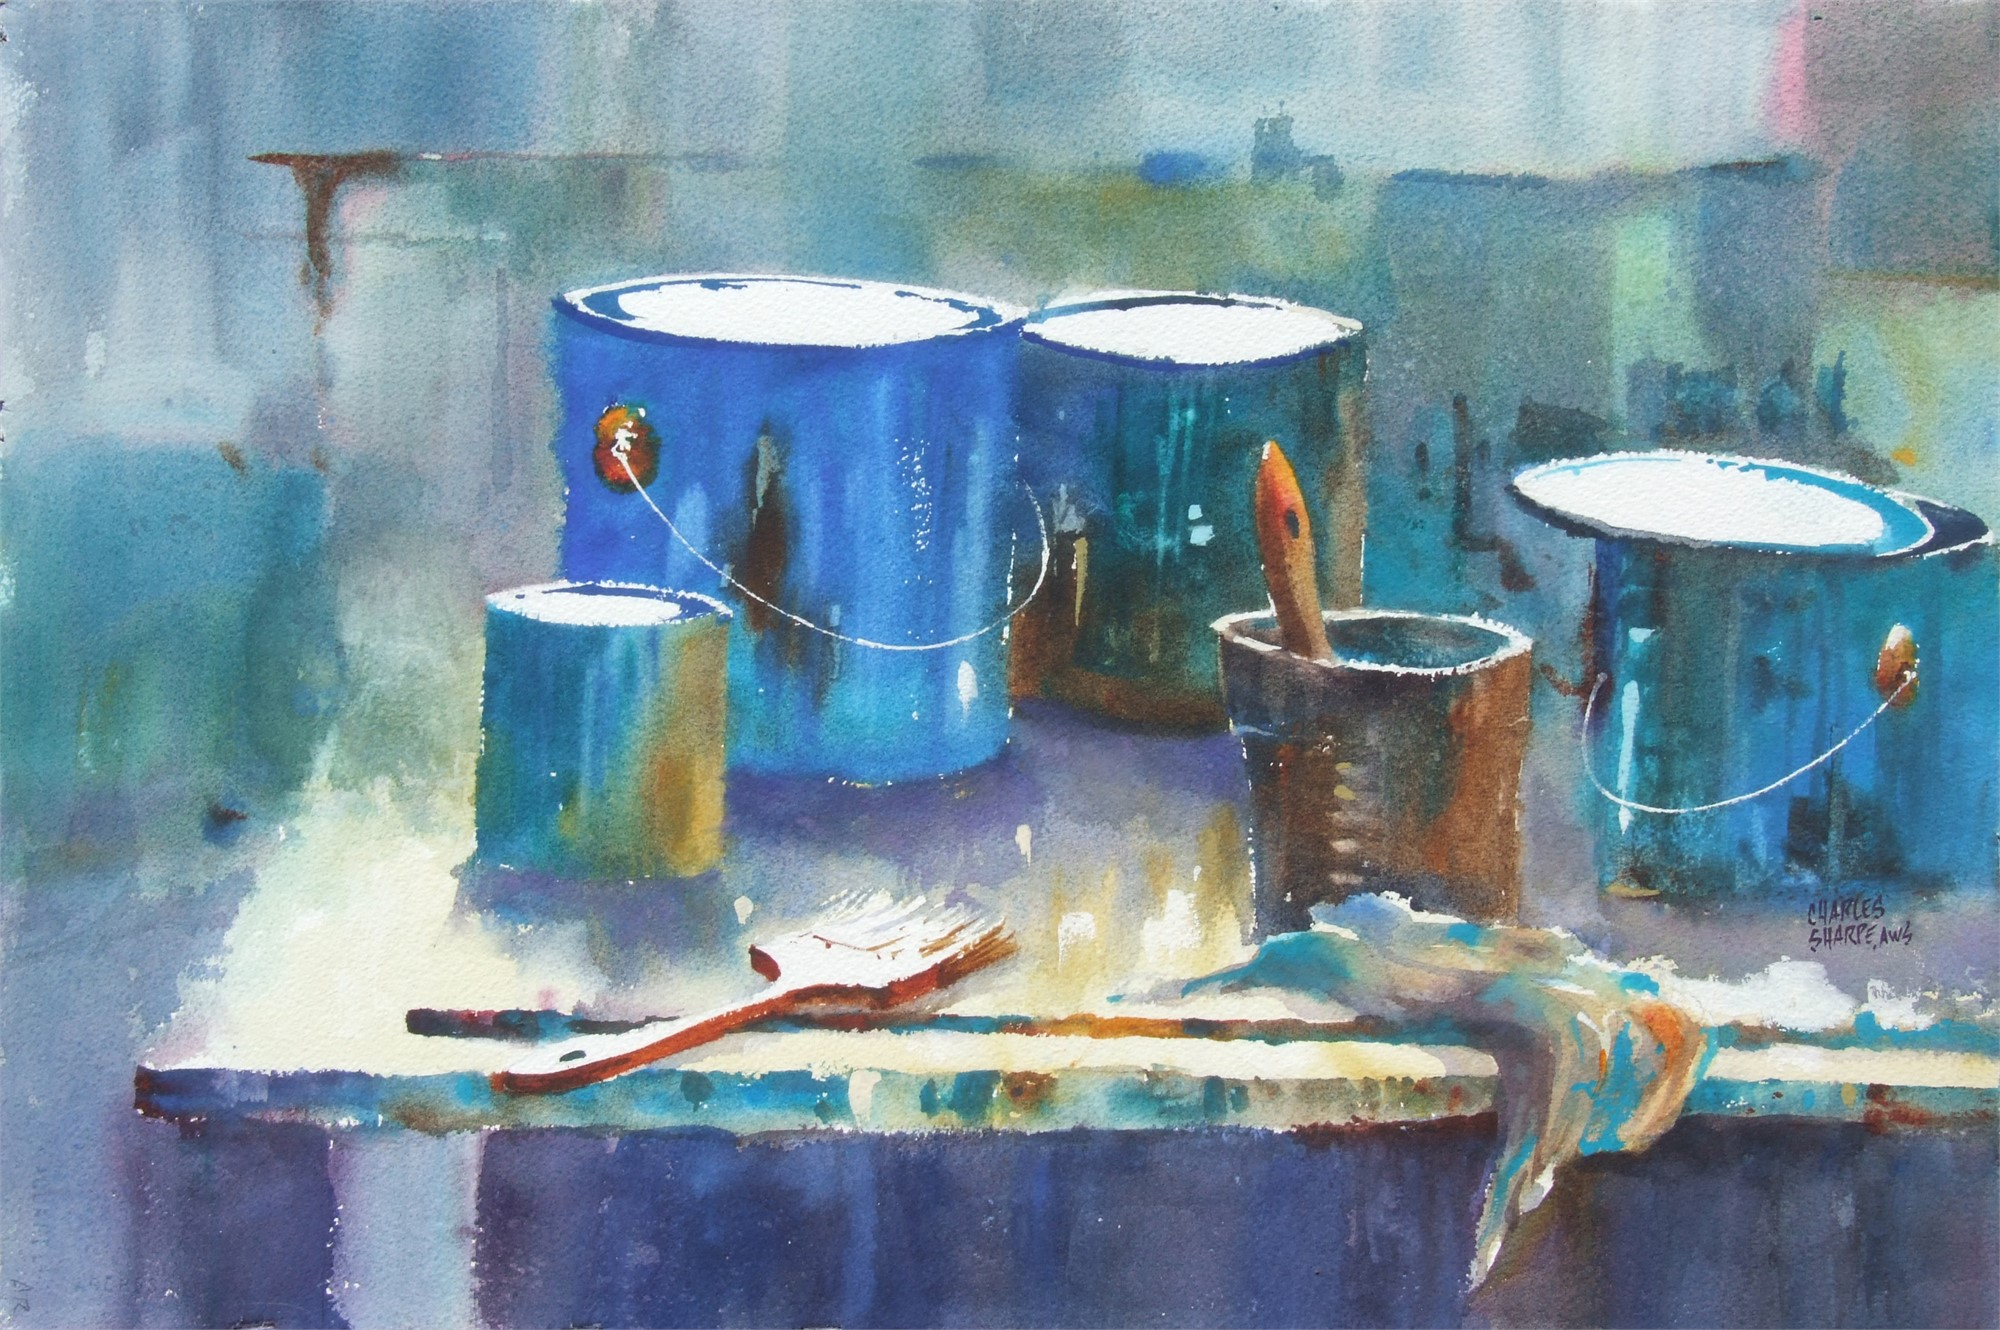 Paintin' the Blues by Charles Sharpe